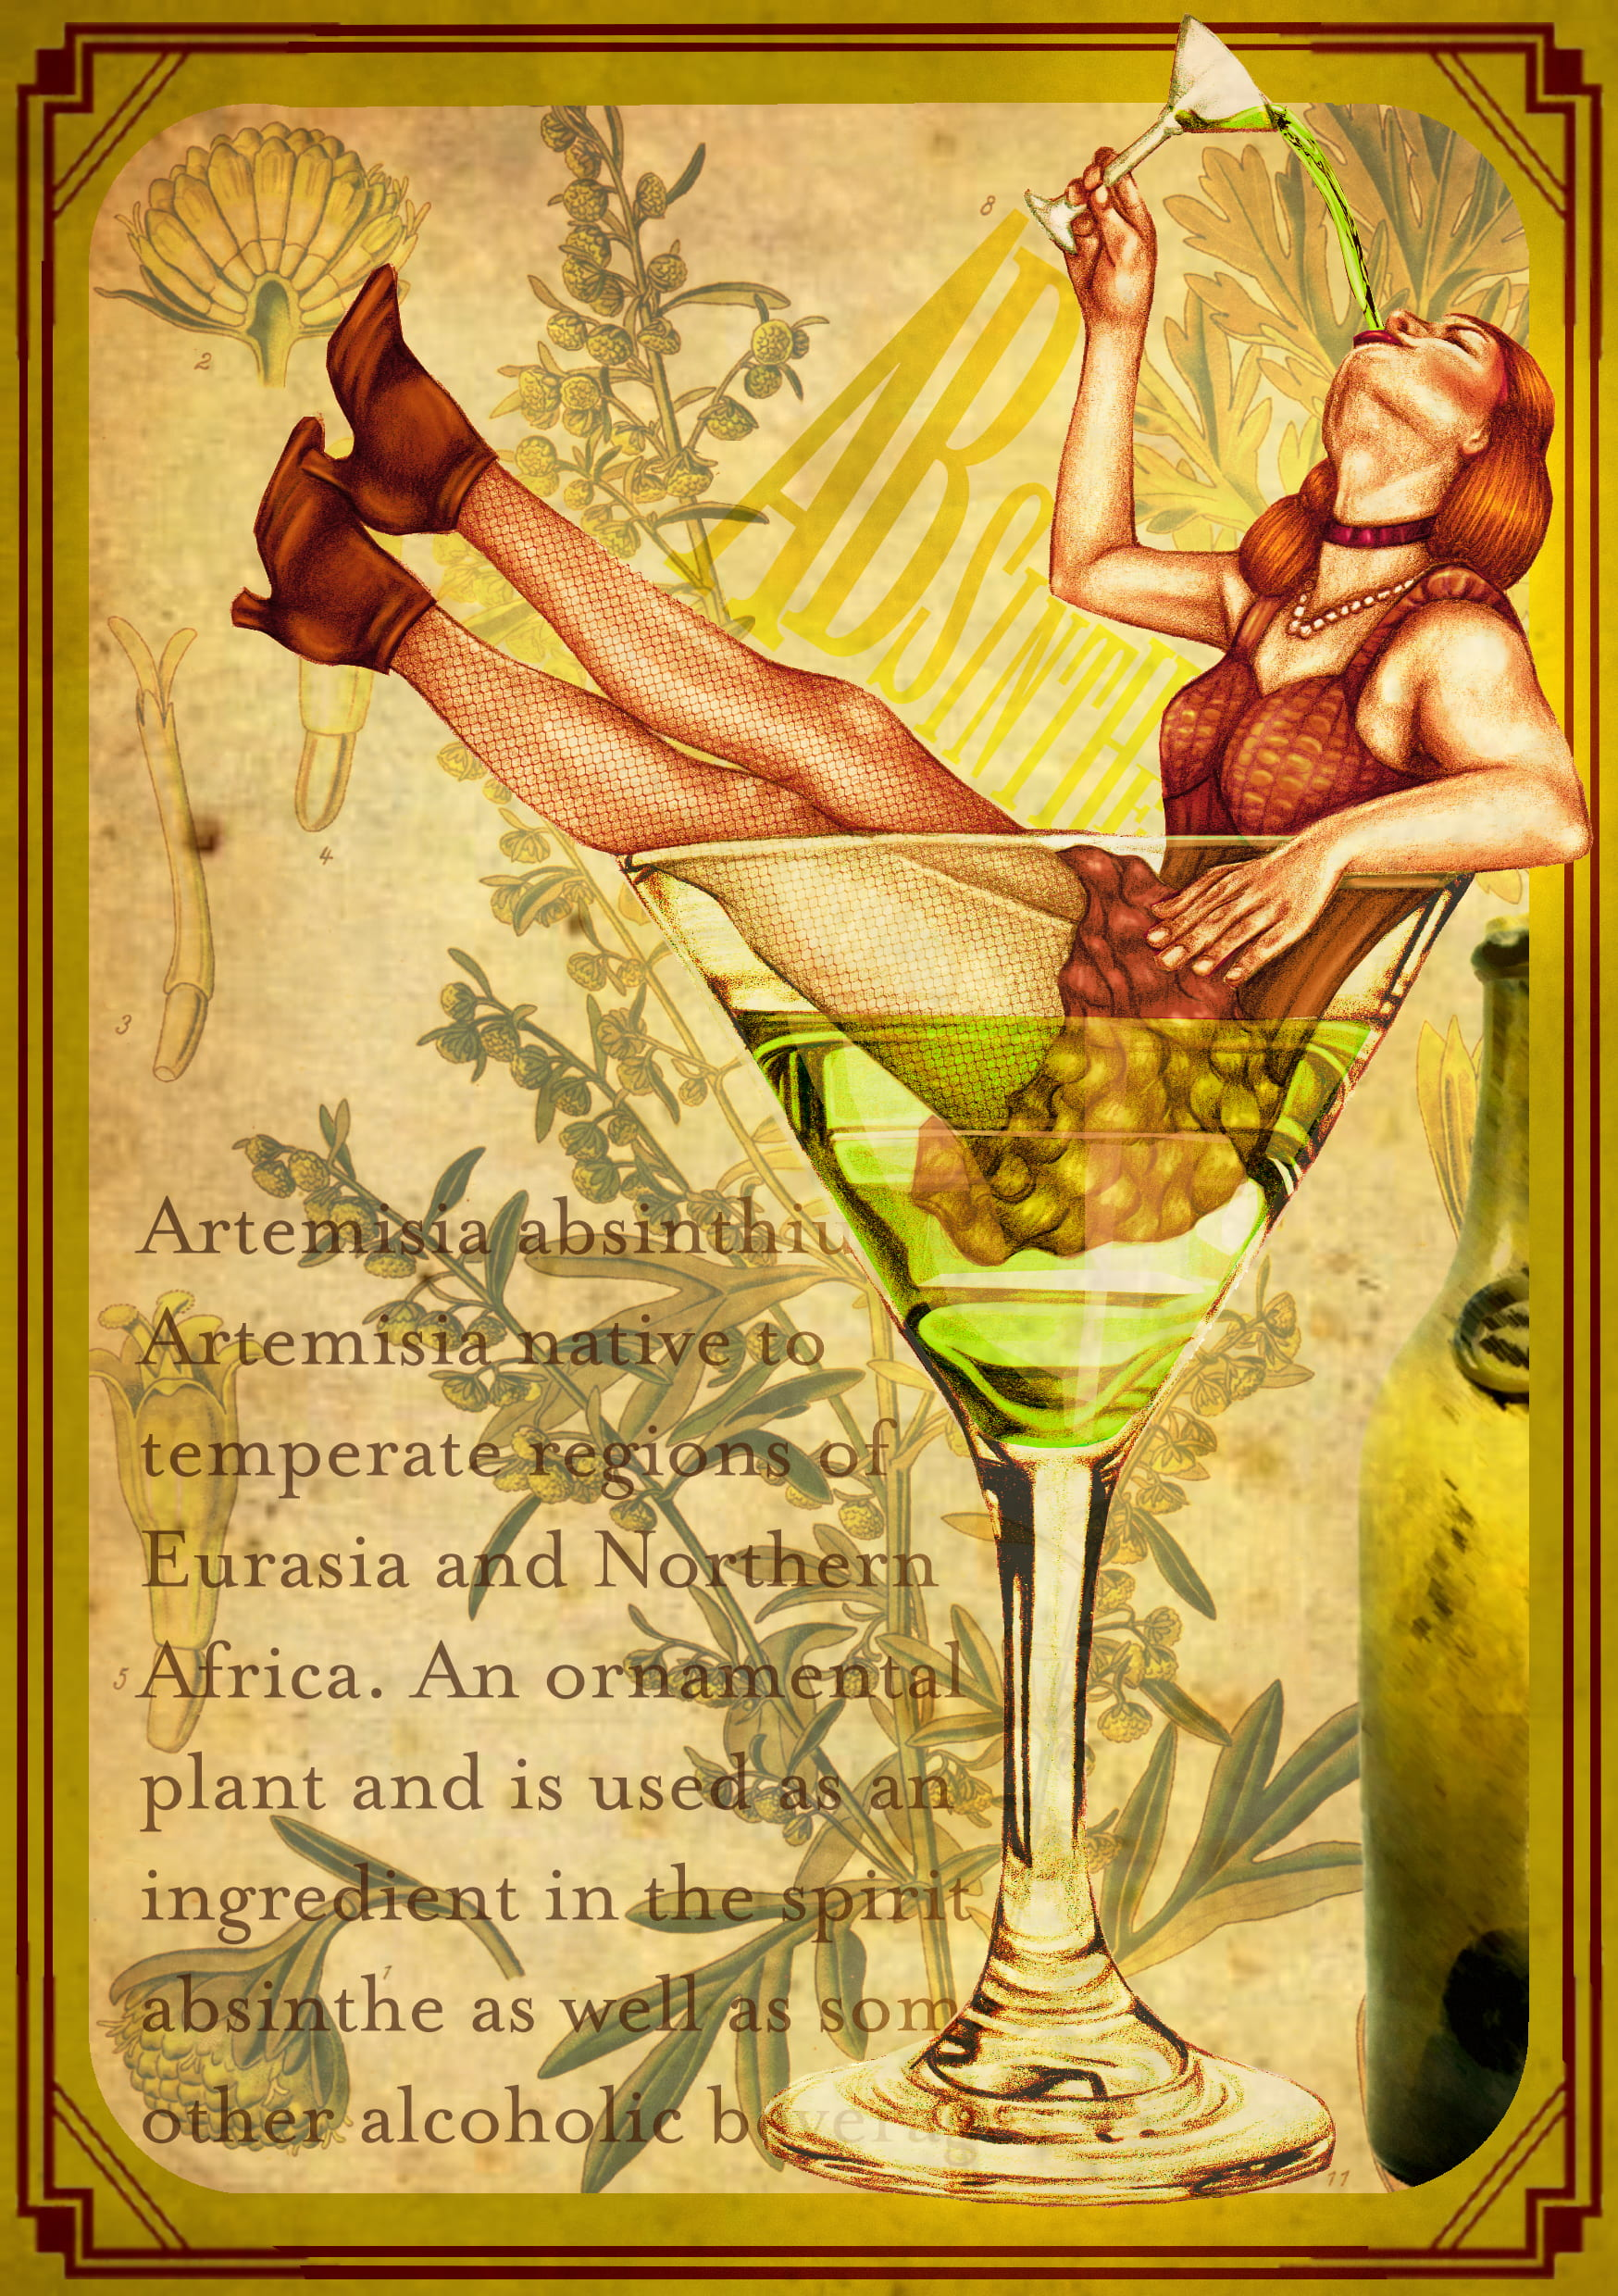 An illustration of a cabaret girl, sat in a large glass of absinthe, drinking from a small glass of absinthe.